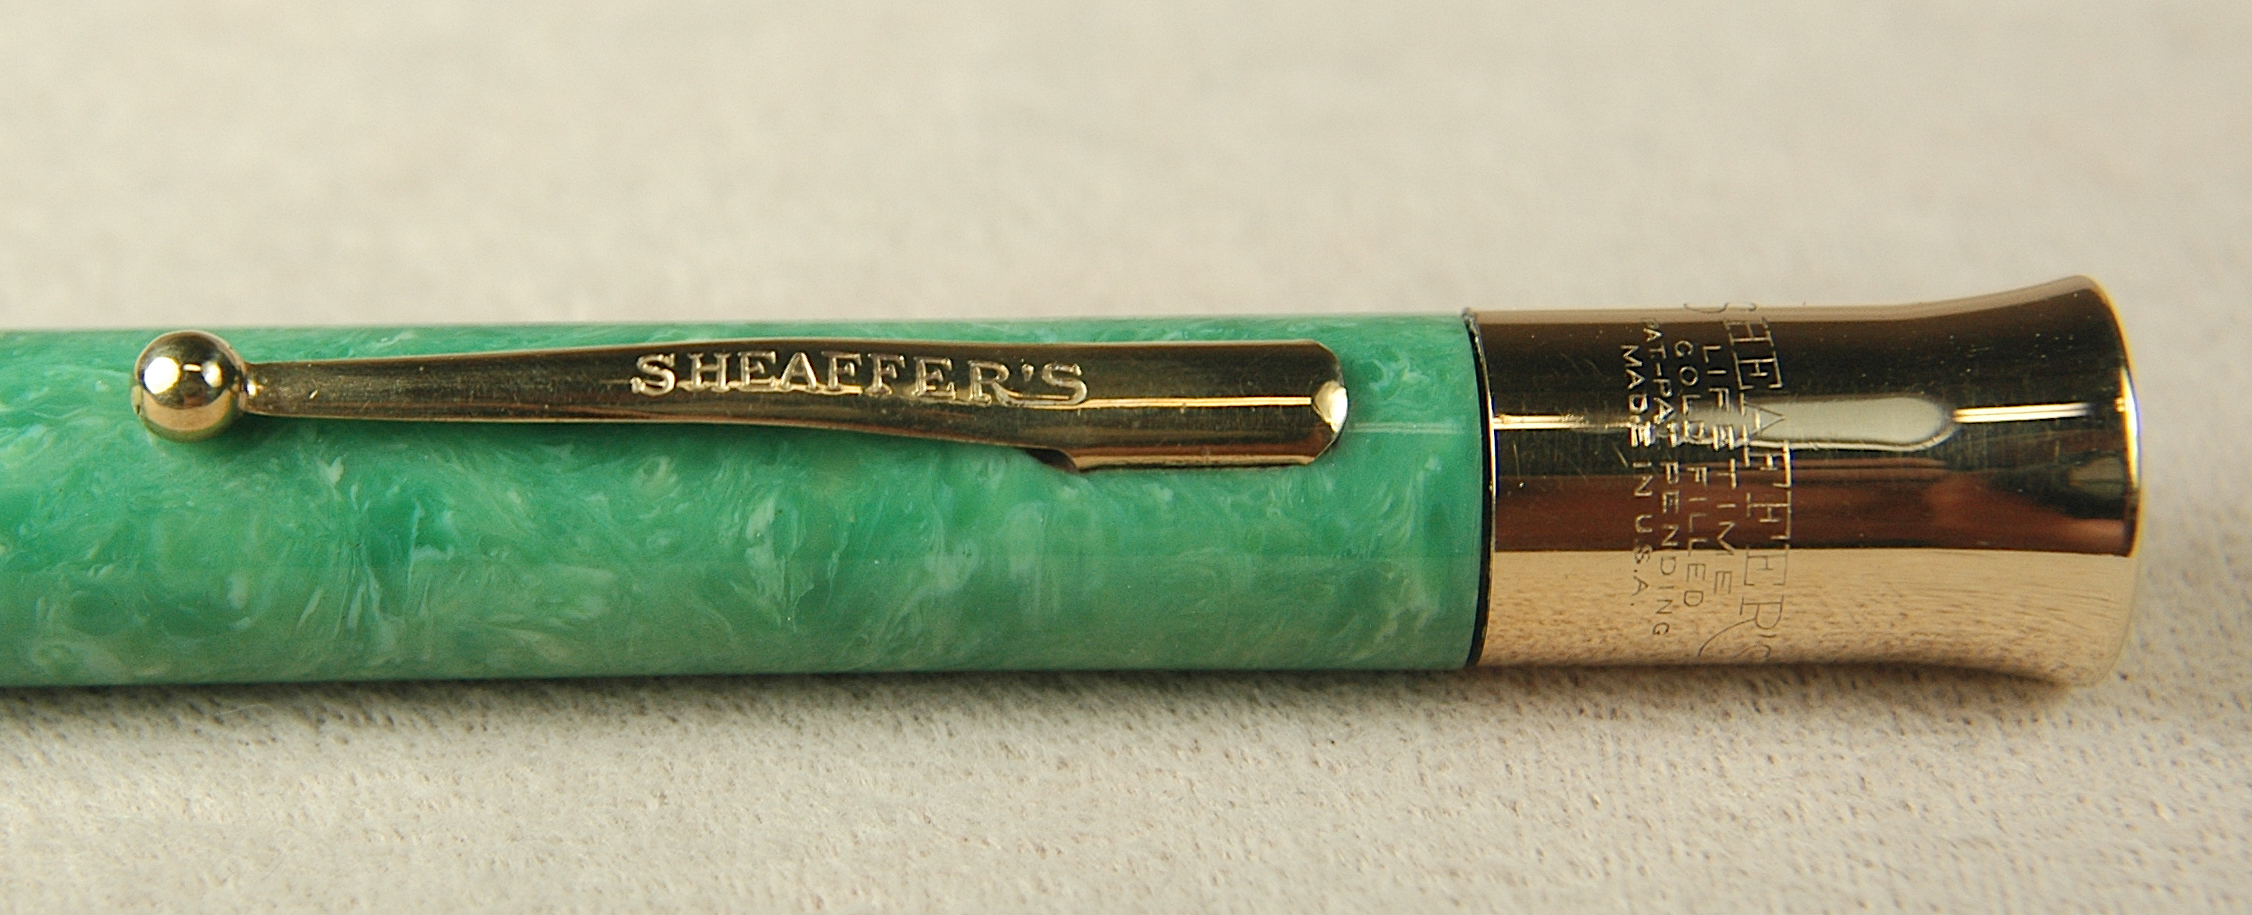 Vintage Pens: 4131: Sheaffer: Flat Top